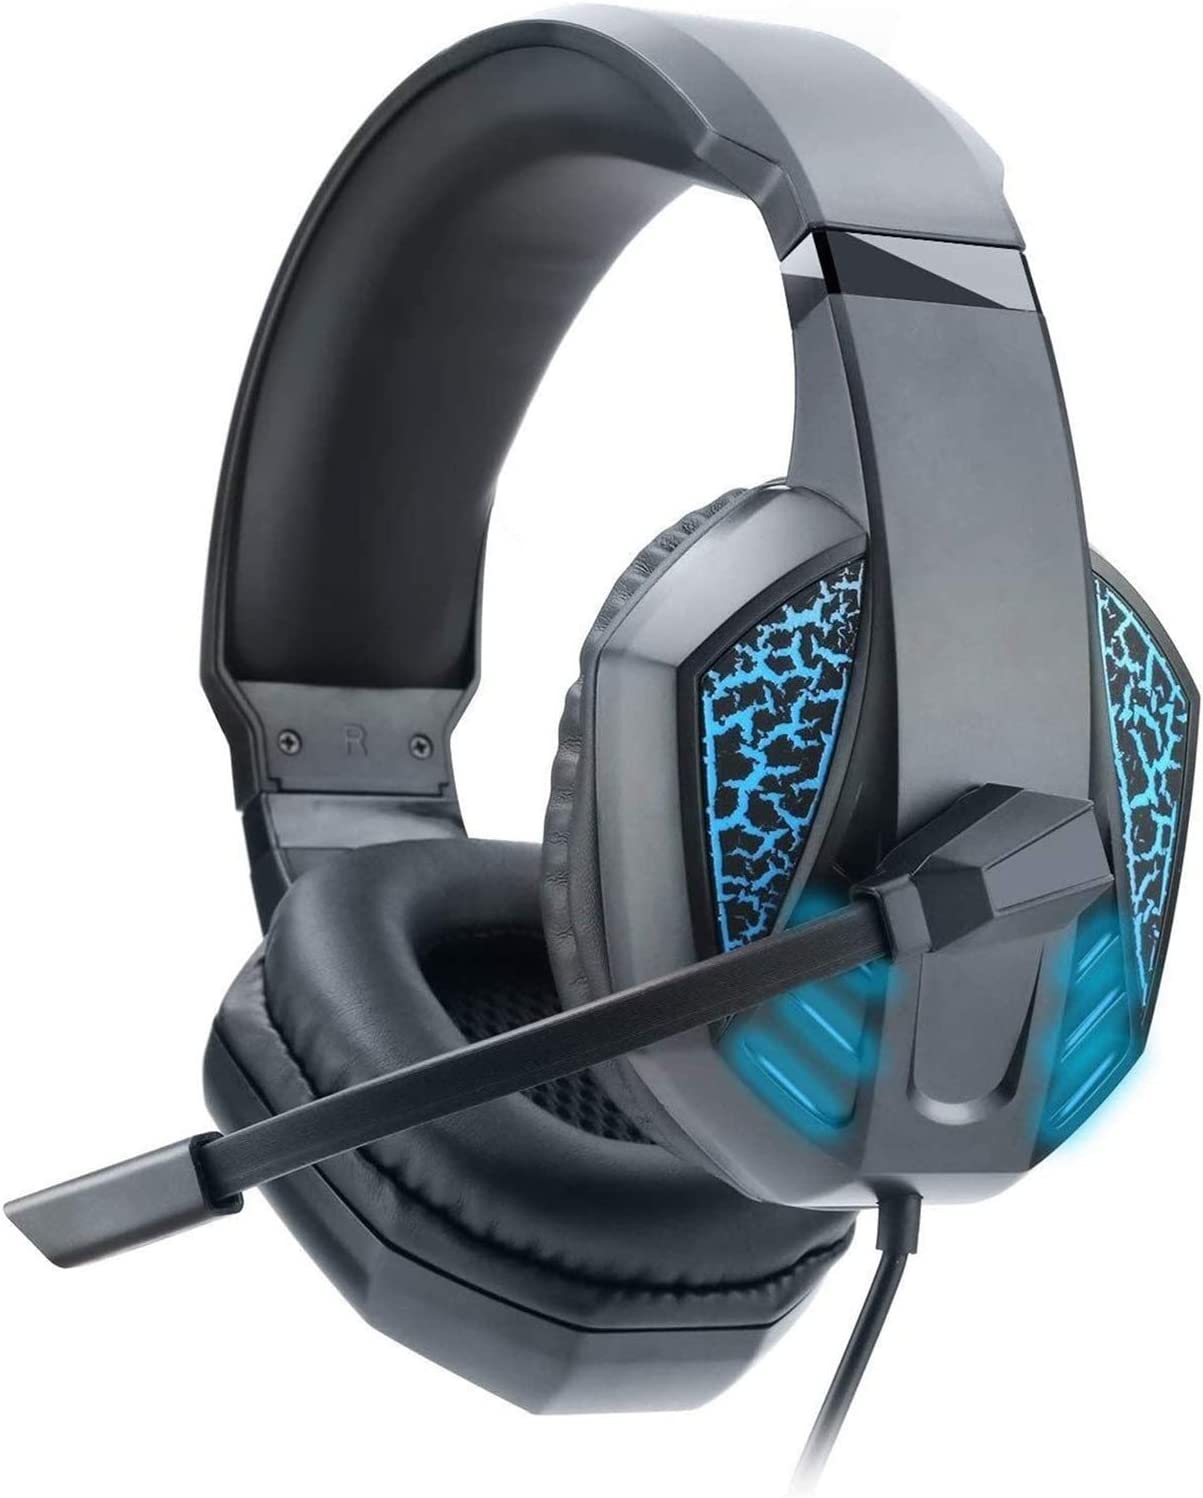 KDLYQ Gaming Headset Max 84% Manufacturer regenerated product OFF for PS4 PC Sound with Surround Noi